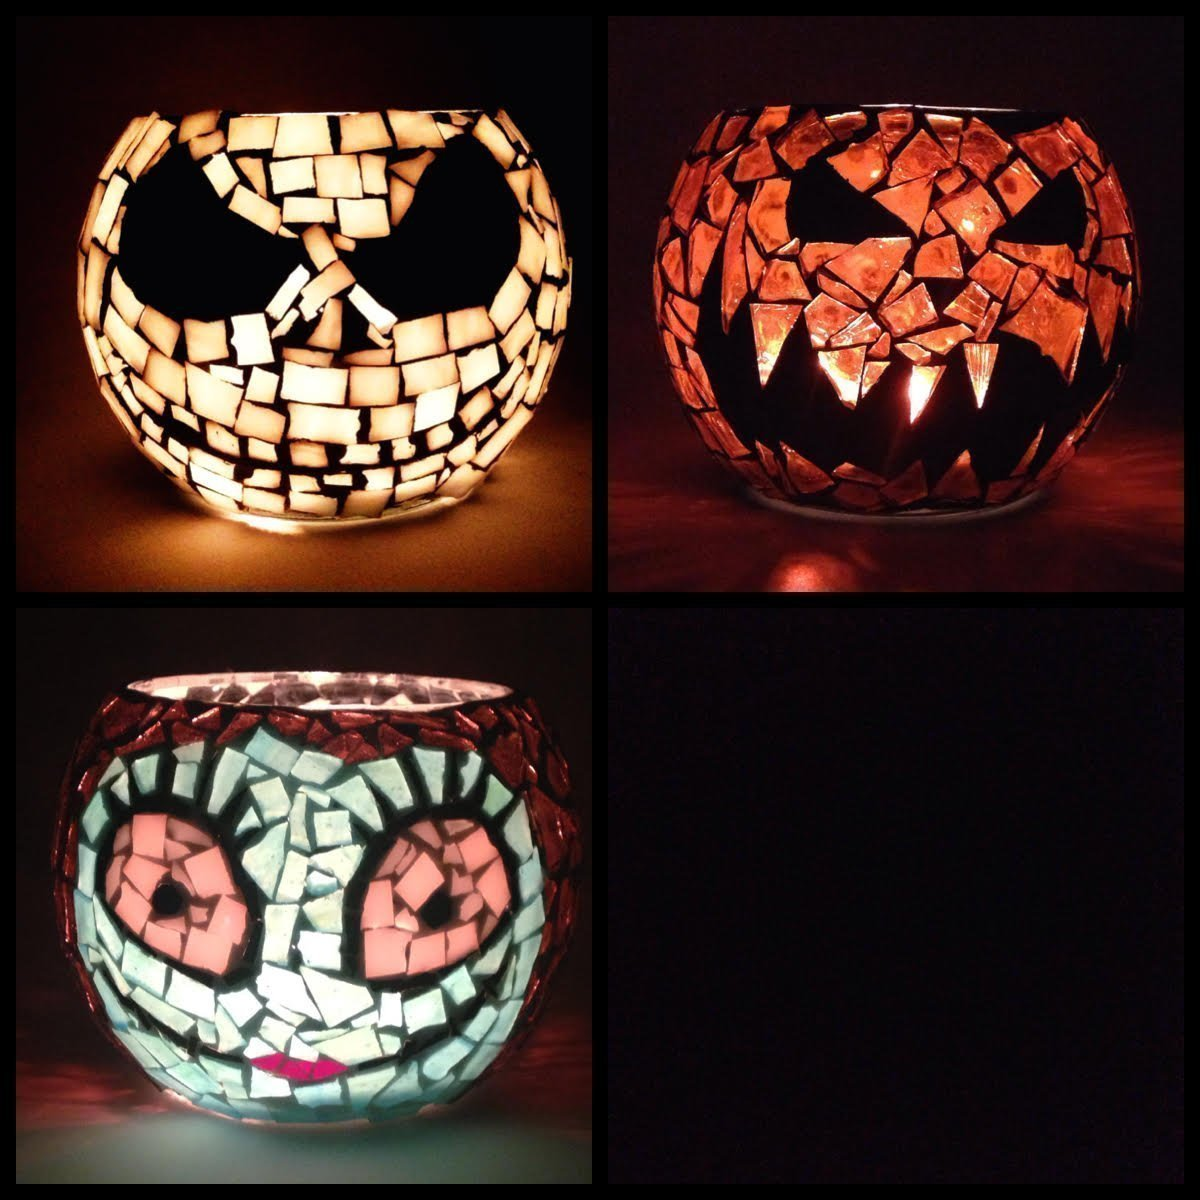 3 Mosaic Candle Holders, 3.5 Inch Votive, Skeleton Jack, Pumpkin Jack O lantern and Lady. Handcrafted Mosaic candle holders